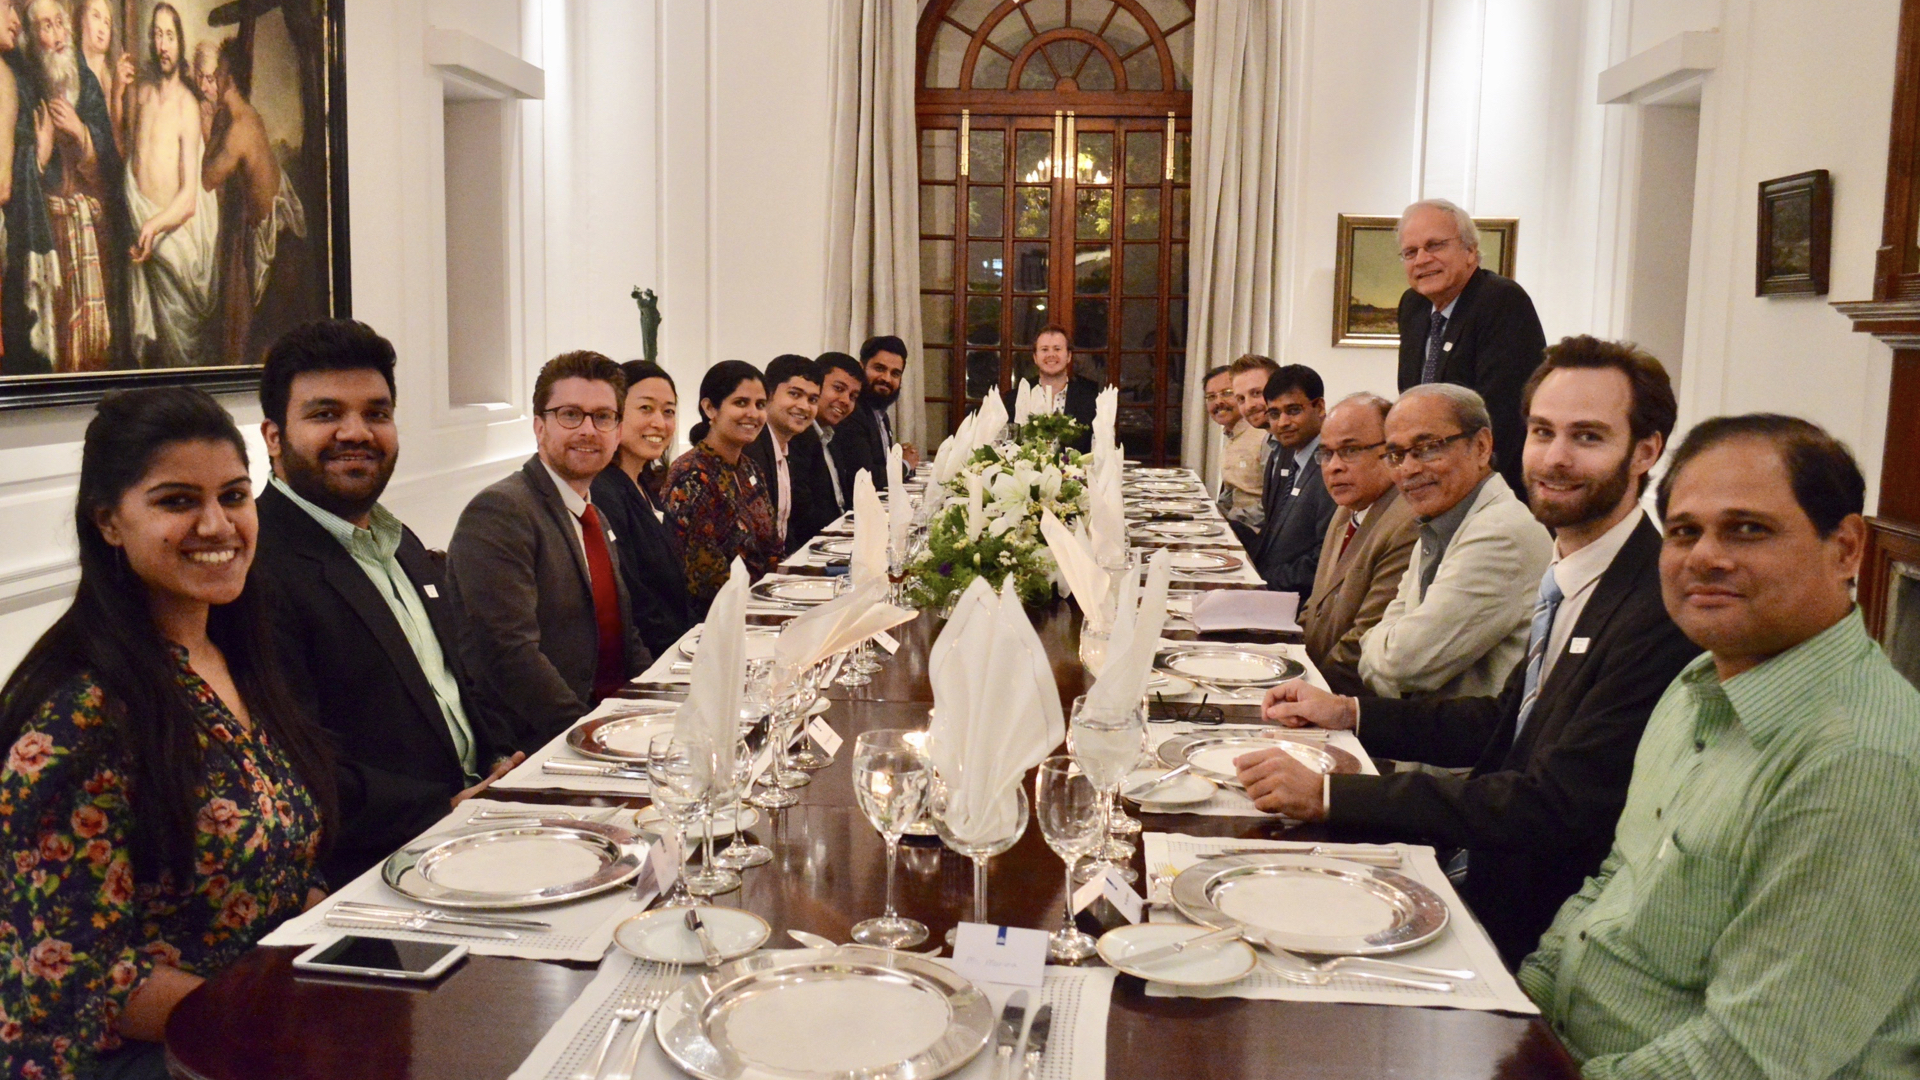 The dinner gave floor to an energetic discussion on whether and how to transform the rural Indian energy market. Rural Spark proposes a more sevrice centered market approach, allowing for a reliable solution for continious acces to energy.